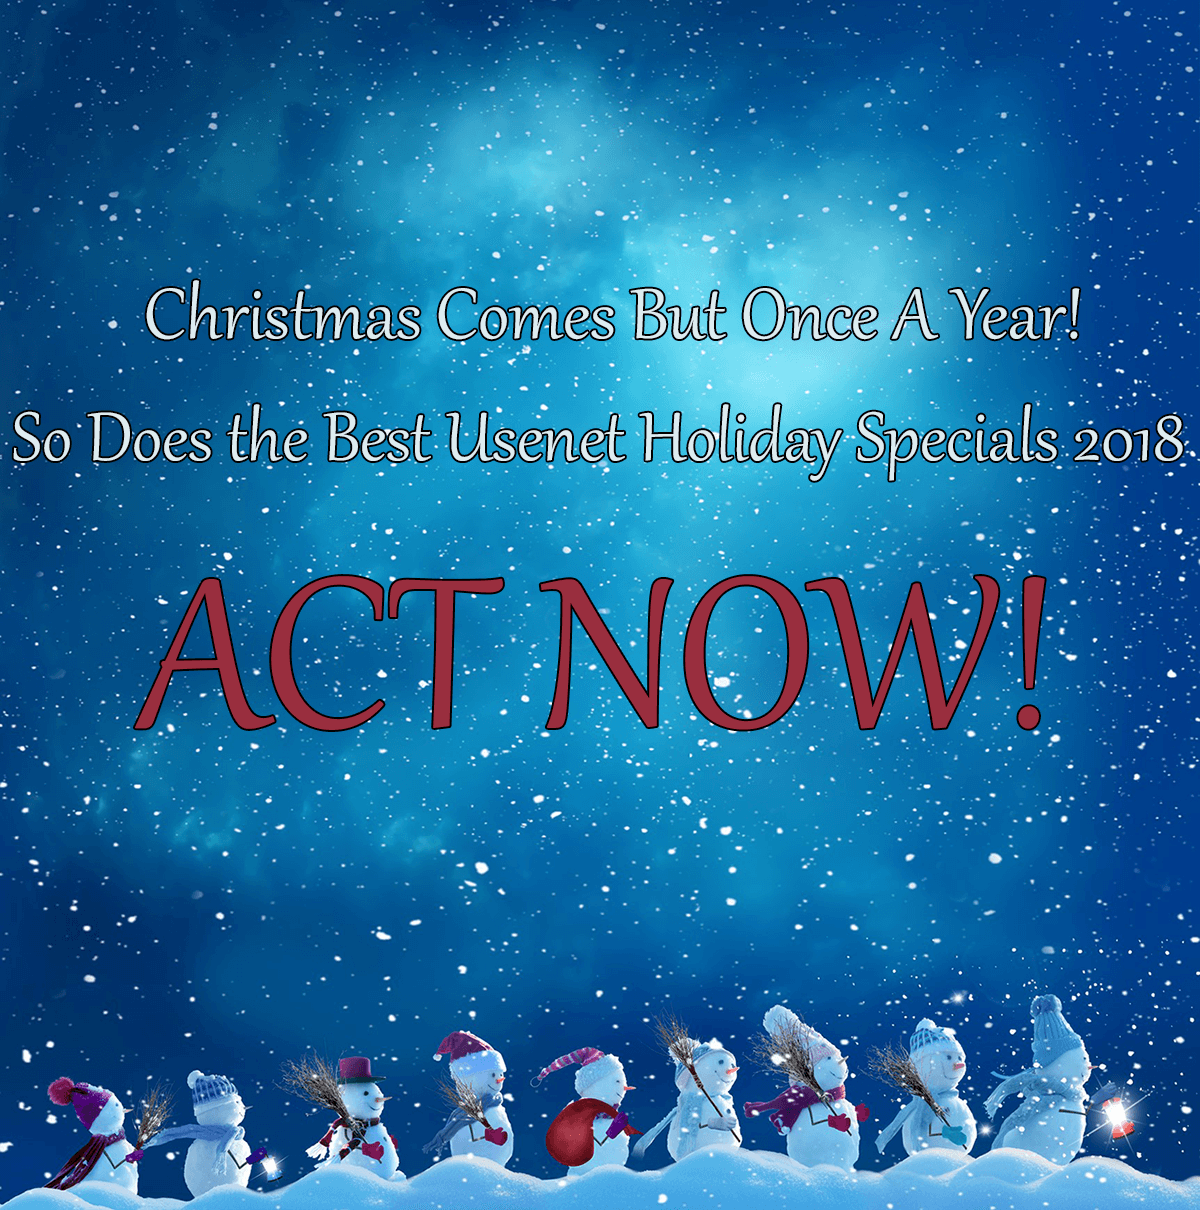 2019 Usenet Holiday Specials